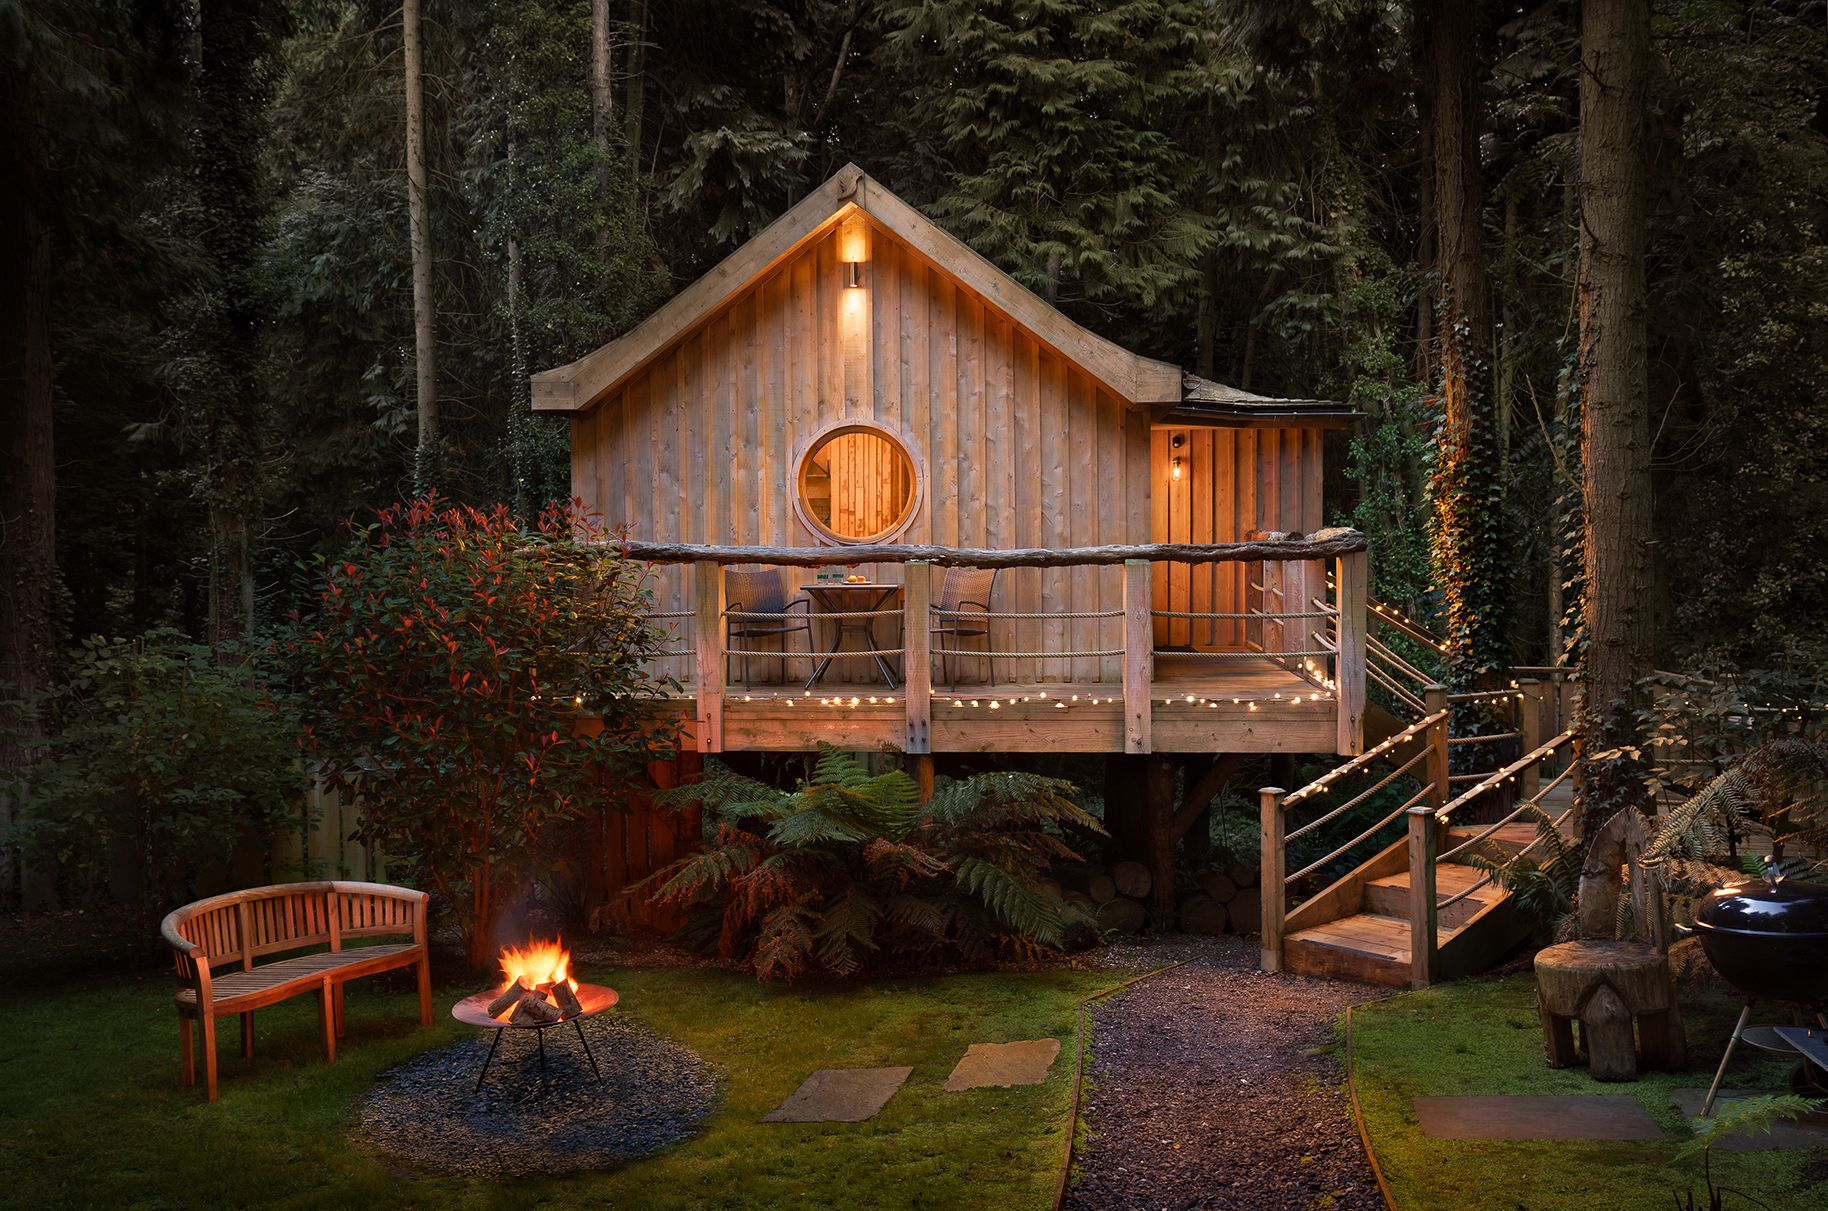 10 incredible treehouses to visit in the UK